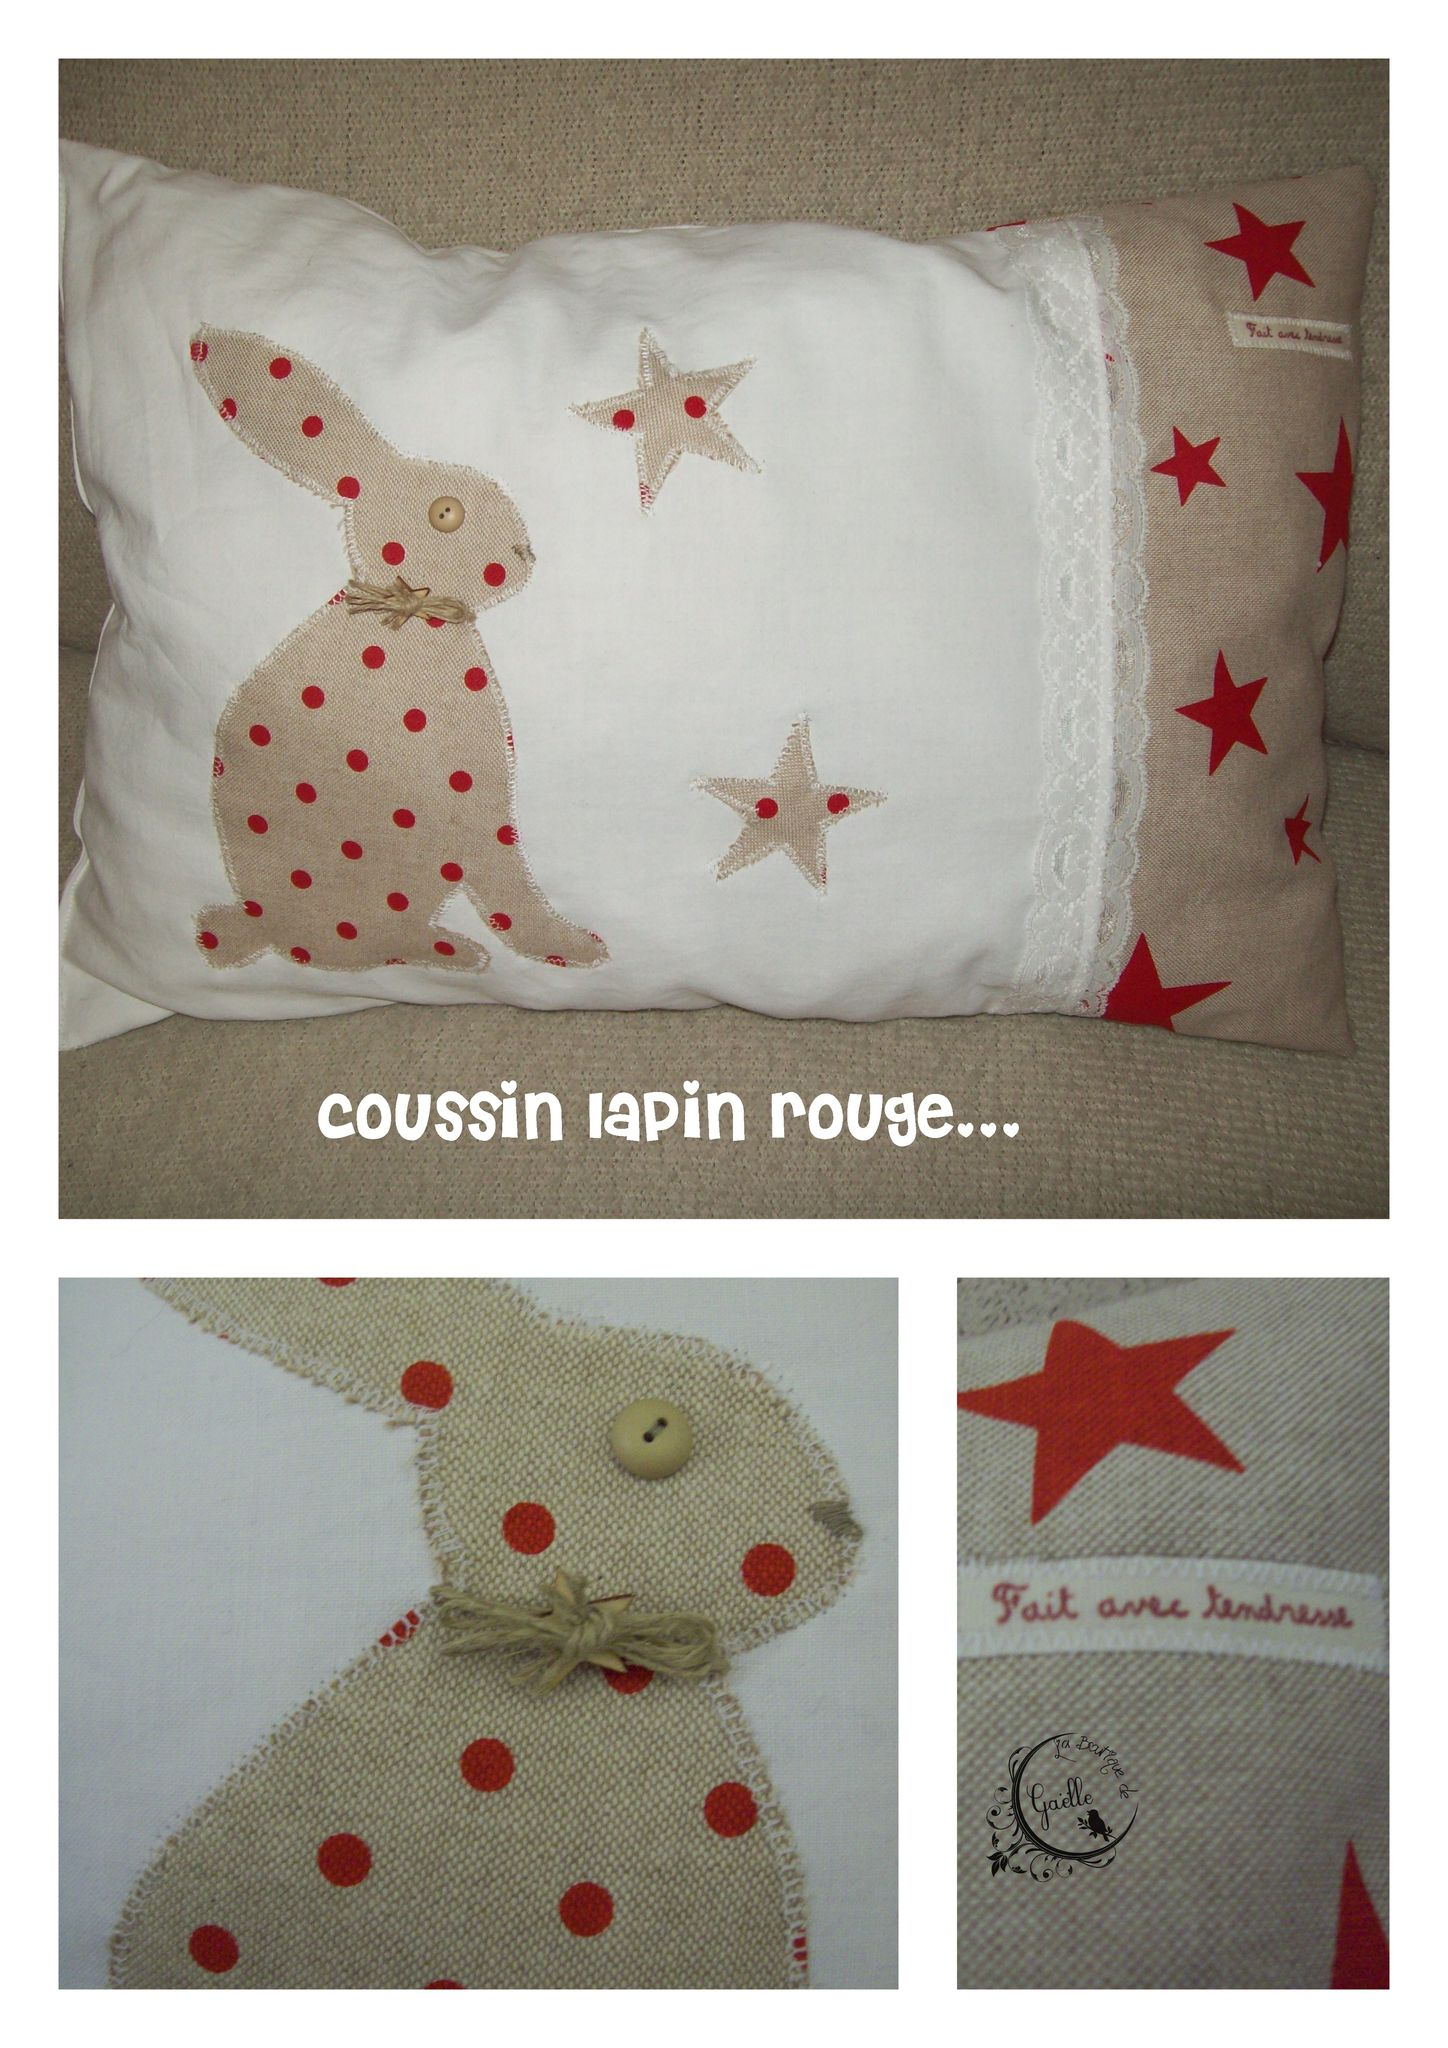 Coussin lapin rouge...